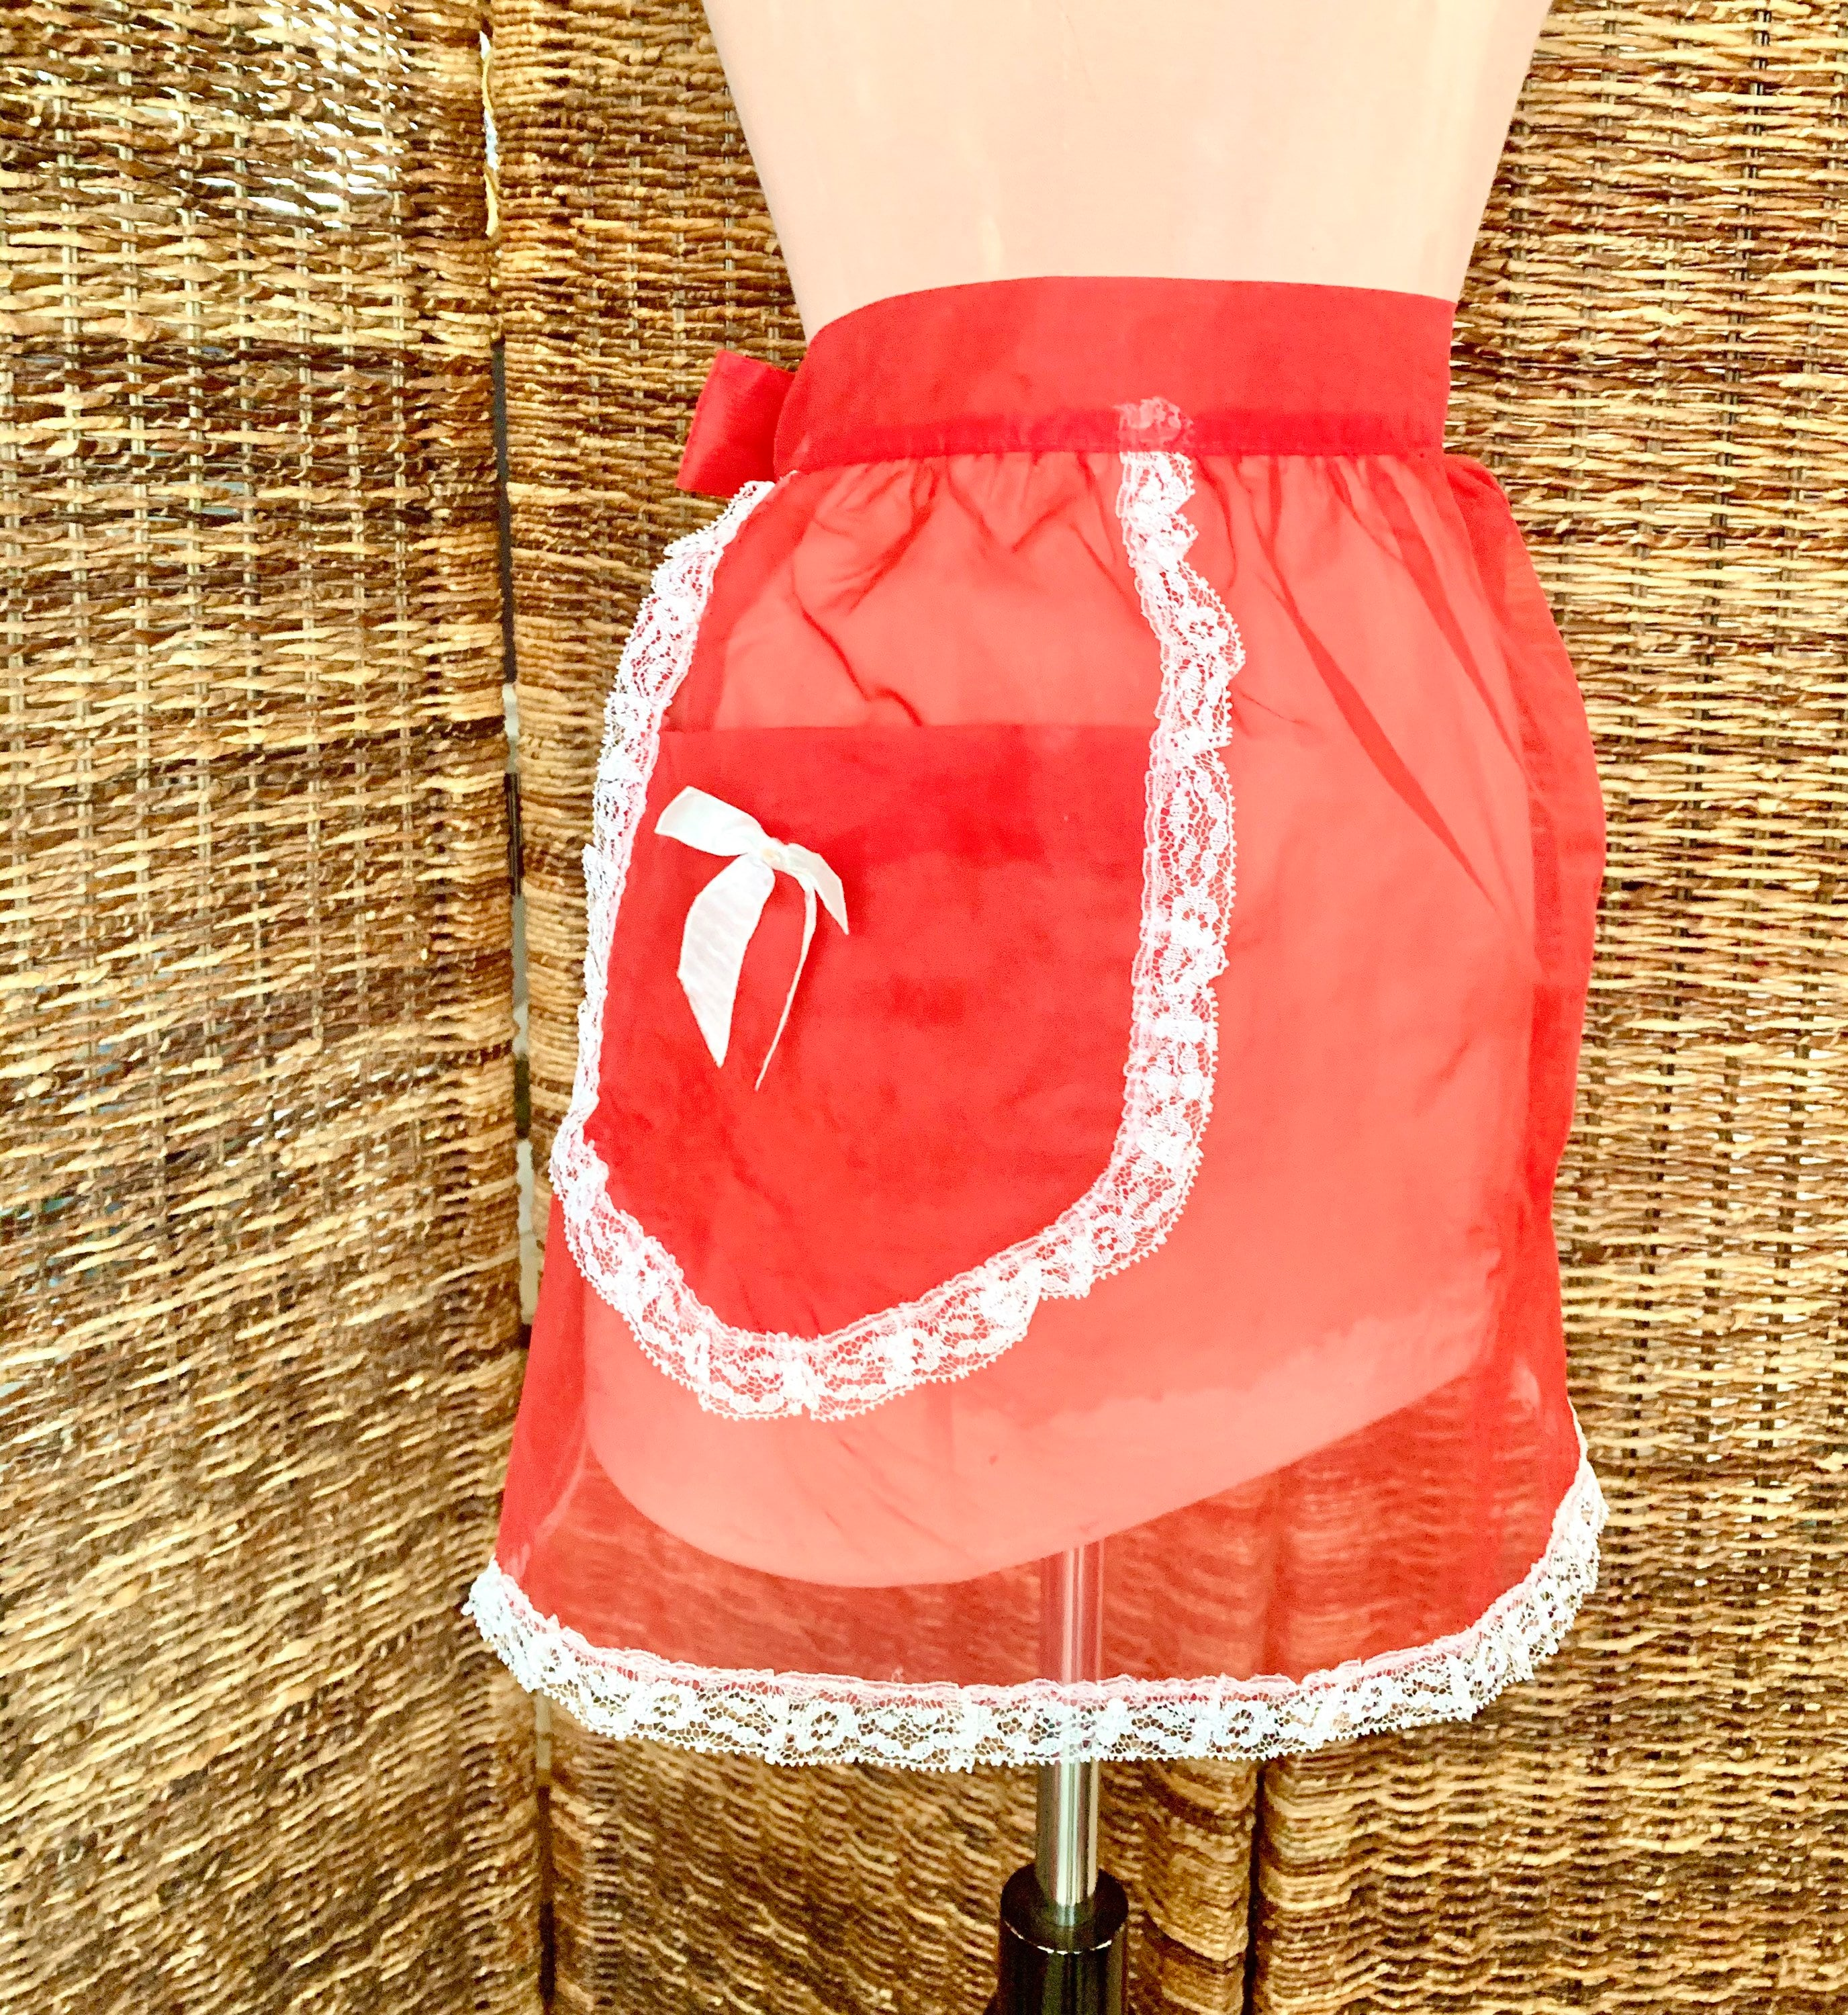 Vintage Aprons, Retro Aprons, Old Fashioned Aprons & Patterns Happy Holiday Hostess Apron Sheer Red, White, Vintage 50S 60S Home Kitchen $26.00 AT vintagedancer.com